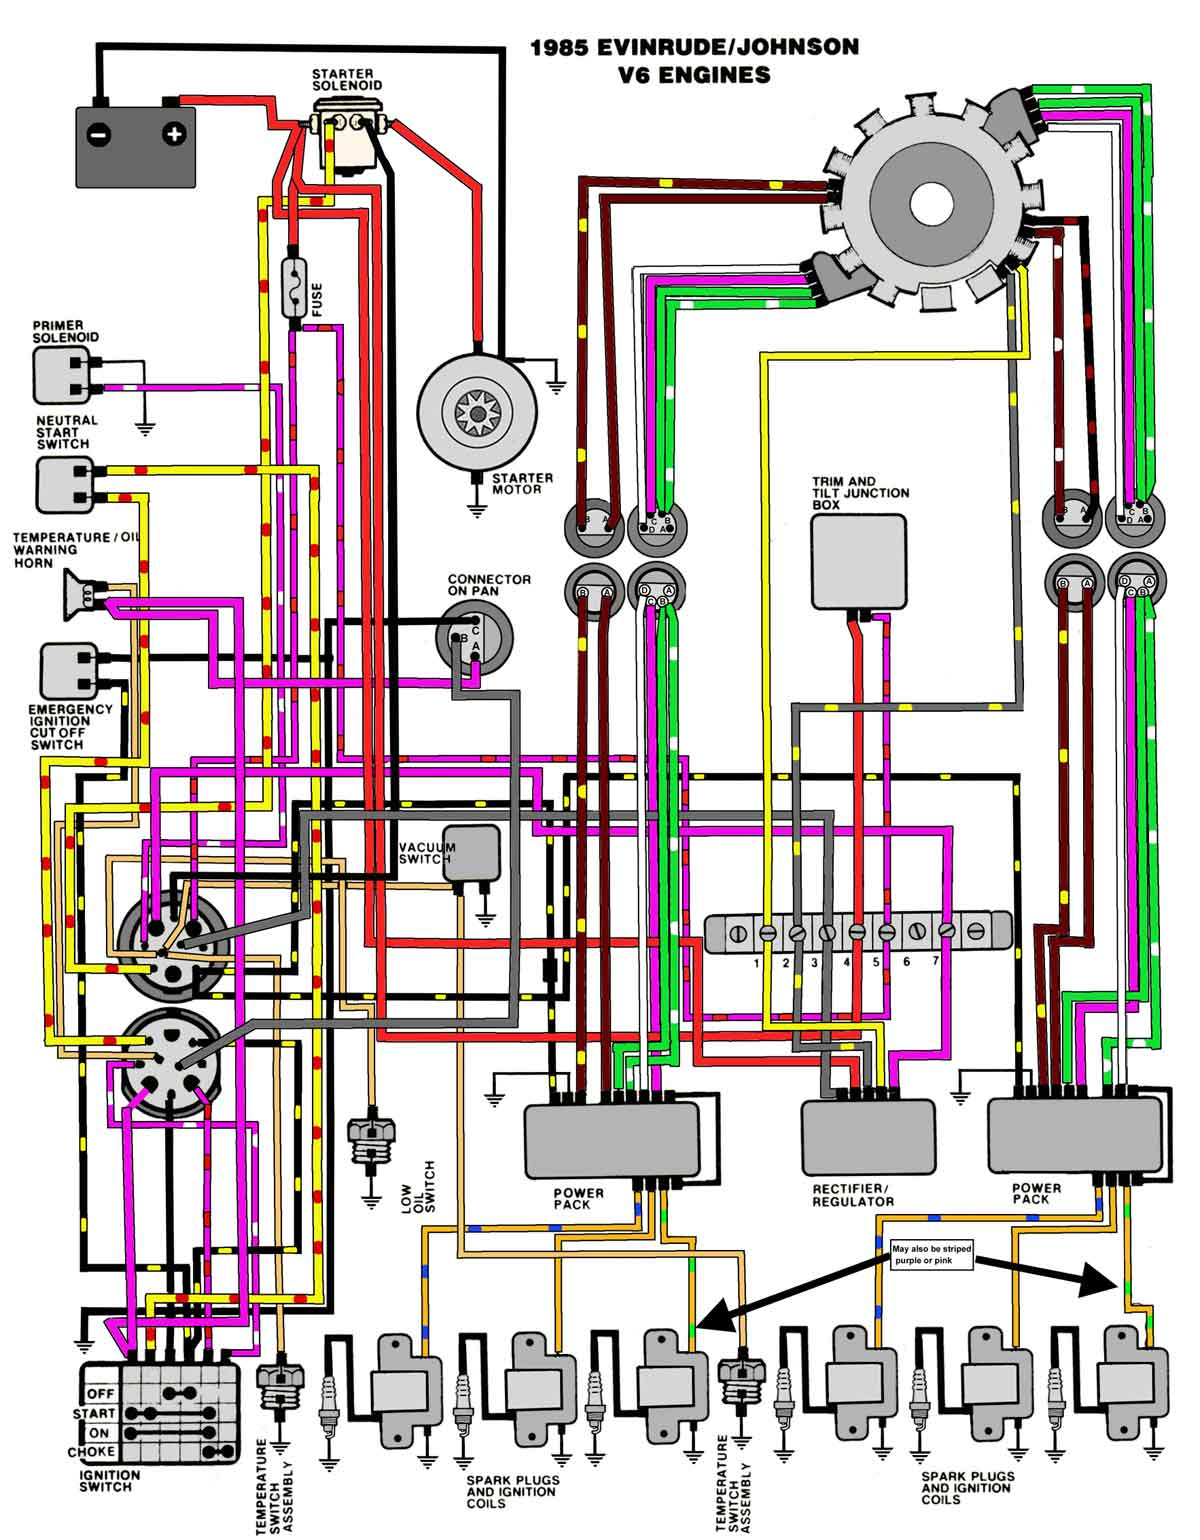 85_V6 mastertech marine evinrude johnson outboard wiring diagrams 85 Mercury Outboard Wiring Diagram at gsmportal.co